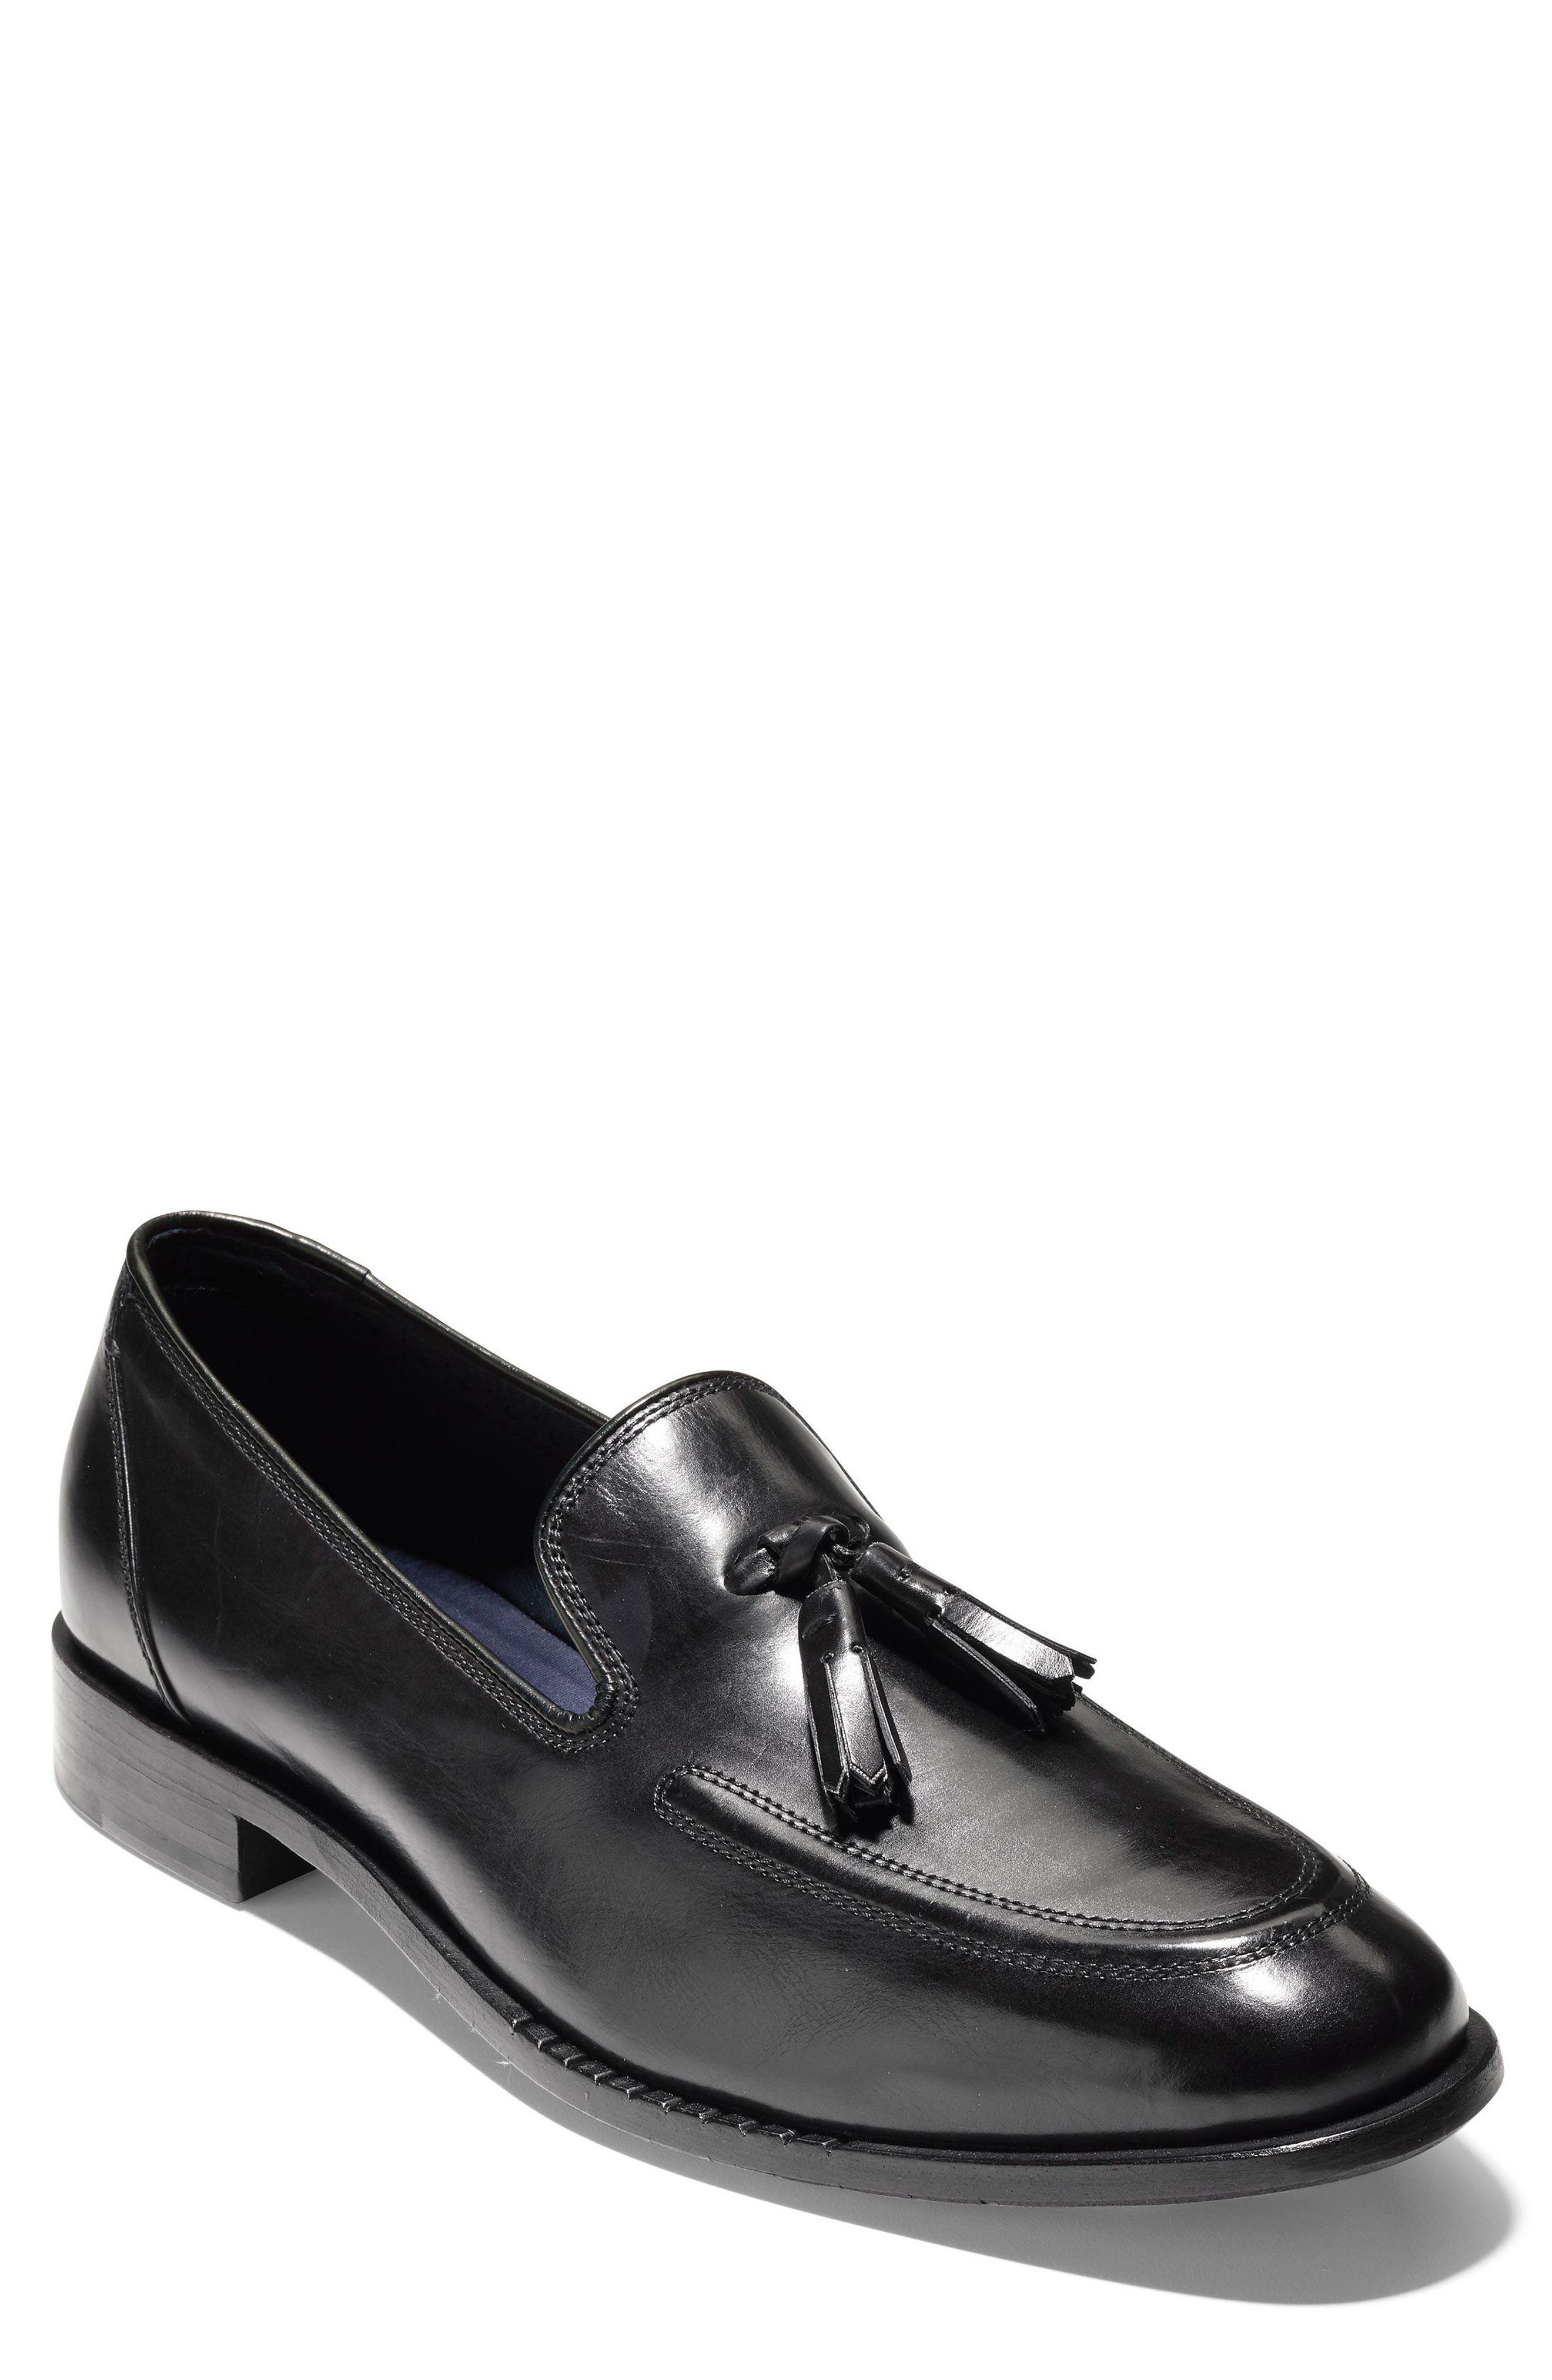 COLE HAAN Washington Grand Tassel Loafer, Main, color, 001